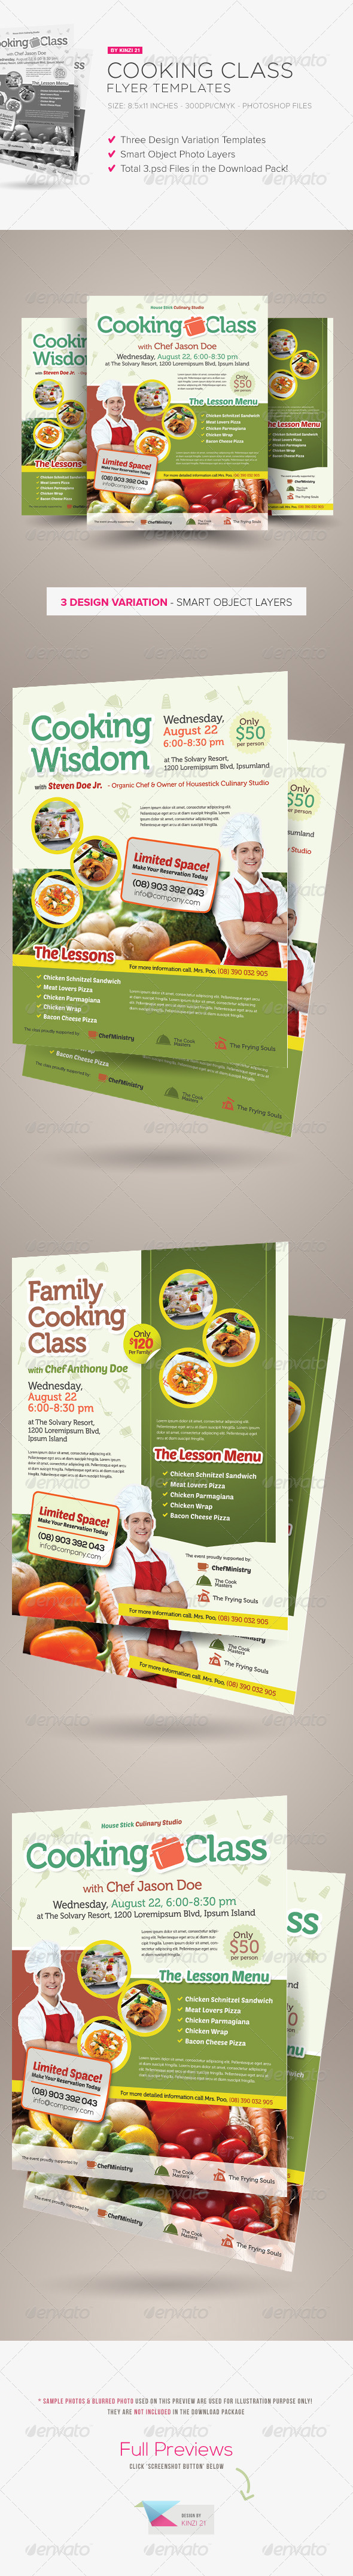 Cooking Class Flyers - Corporate Flyers